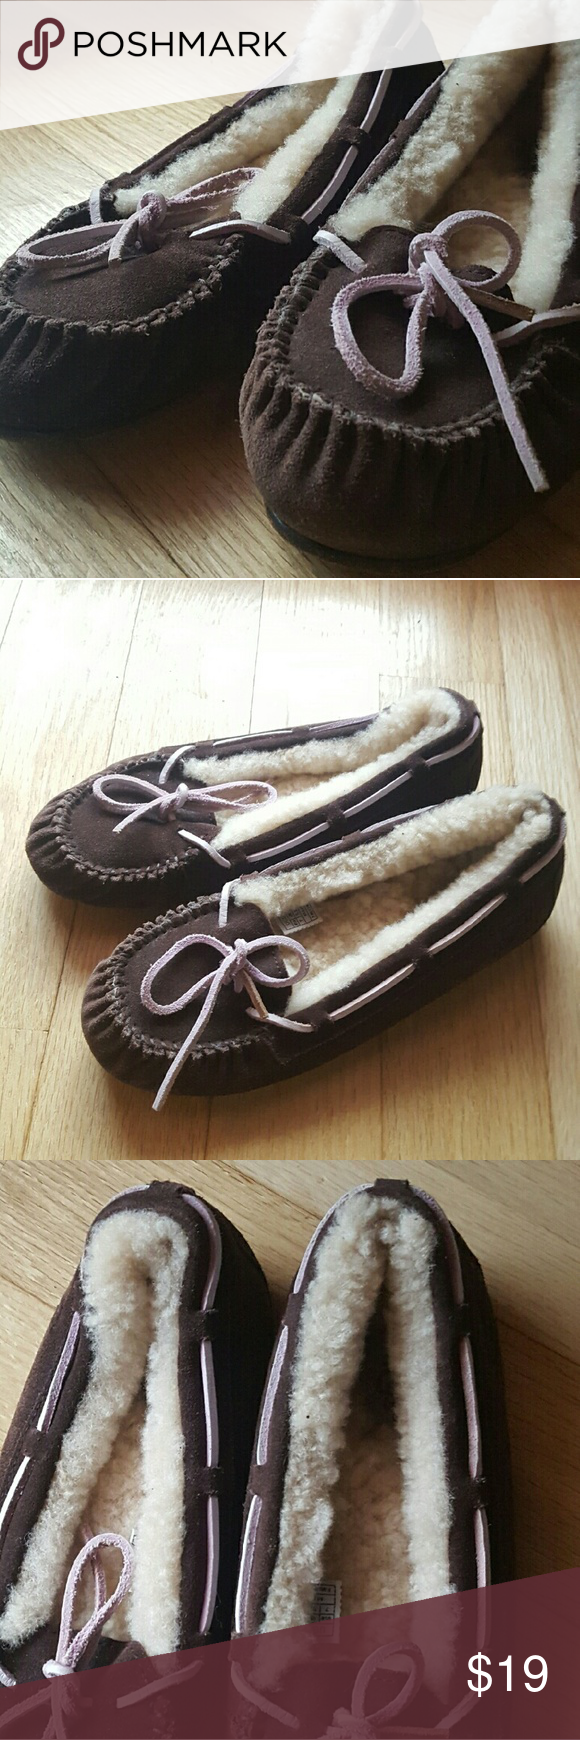 | UGG | Brown & Pink Moccasin Slippers, Size US 7 Brand: UGG  Size: US 7 (womens)  Color(s): Brown Exterior, Pink Ties,  White Interior  Condition: EUC (Excellent Used Condition) Show some signs of wear but still have a lot of life left in them!  Please feel welcome to comment with any questions; I am happy to help! UGG Shoes Moccasins